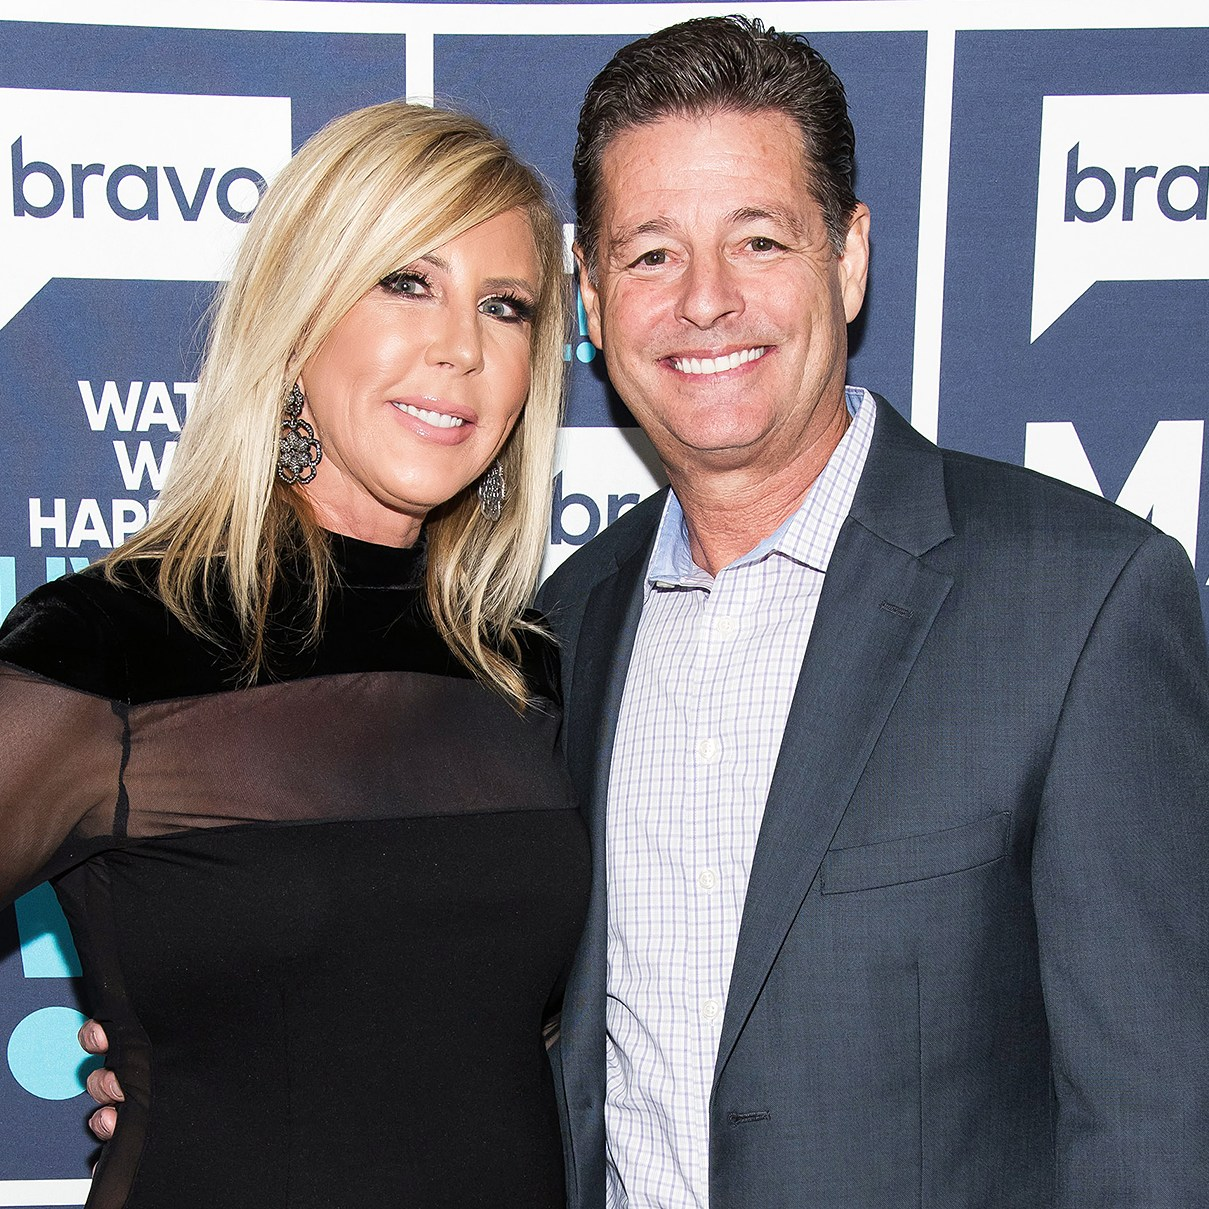 Vicki Gunvalson and Steve Lodge